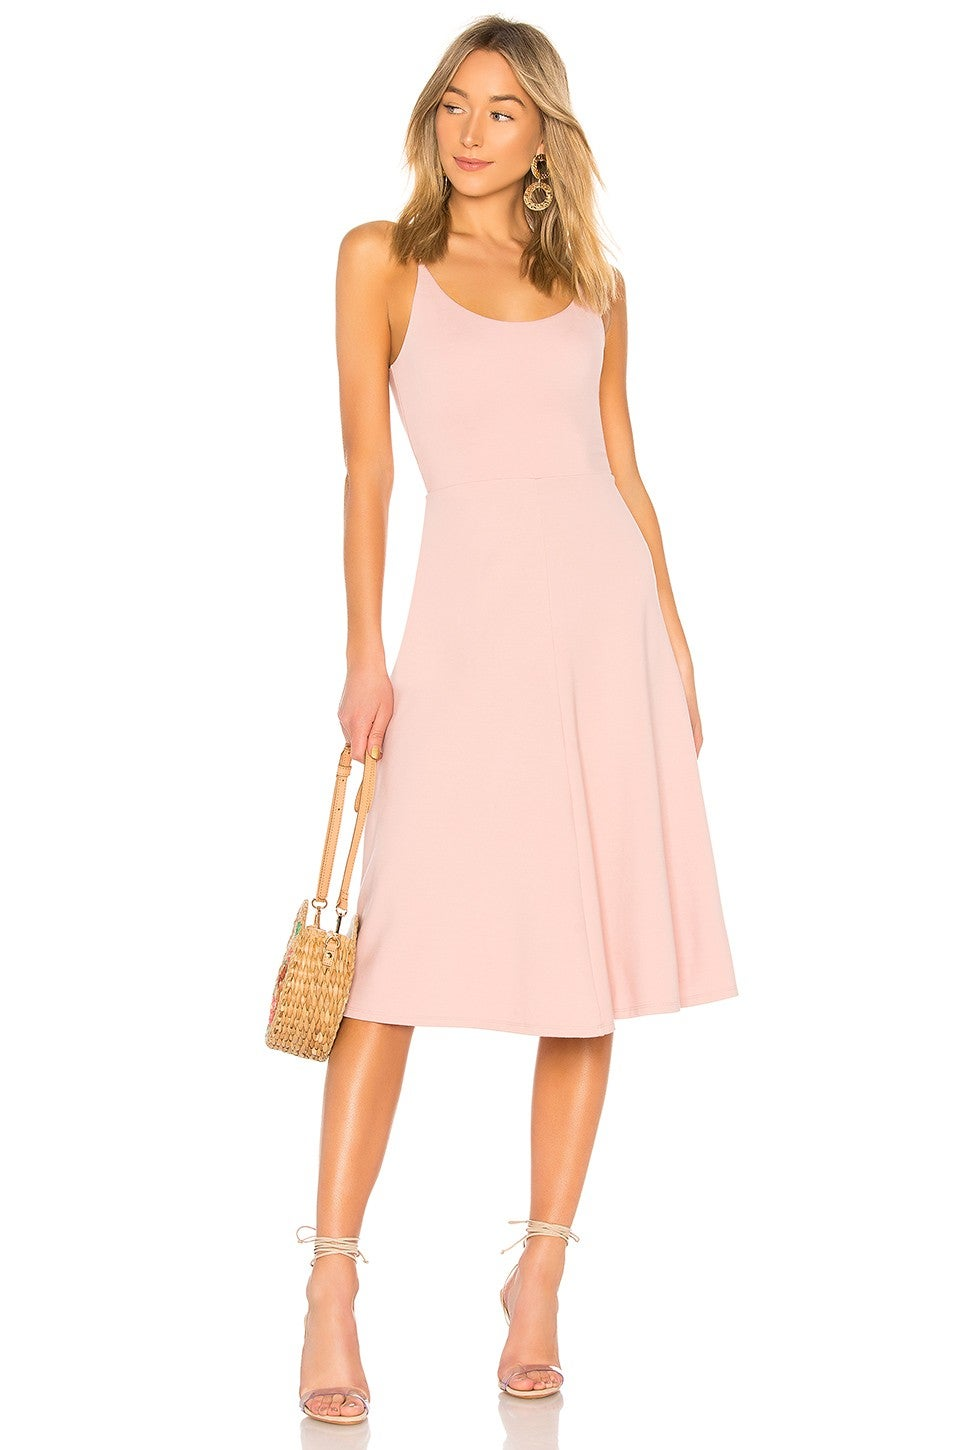 Privacy Please pink flared dress